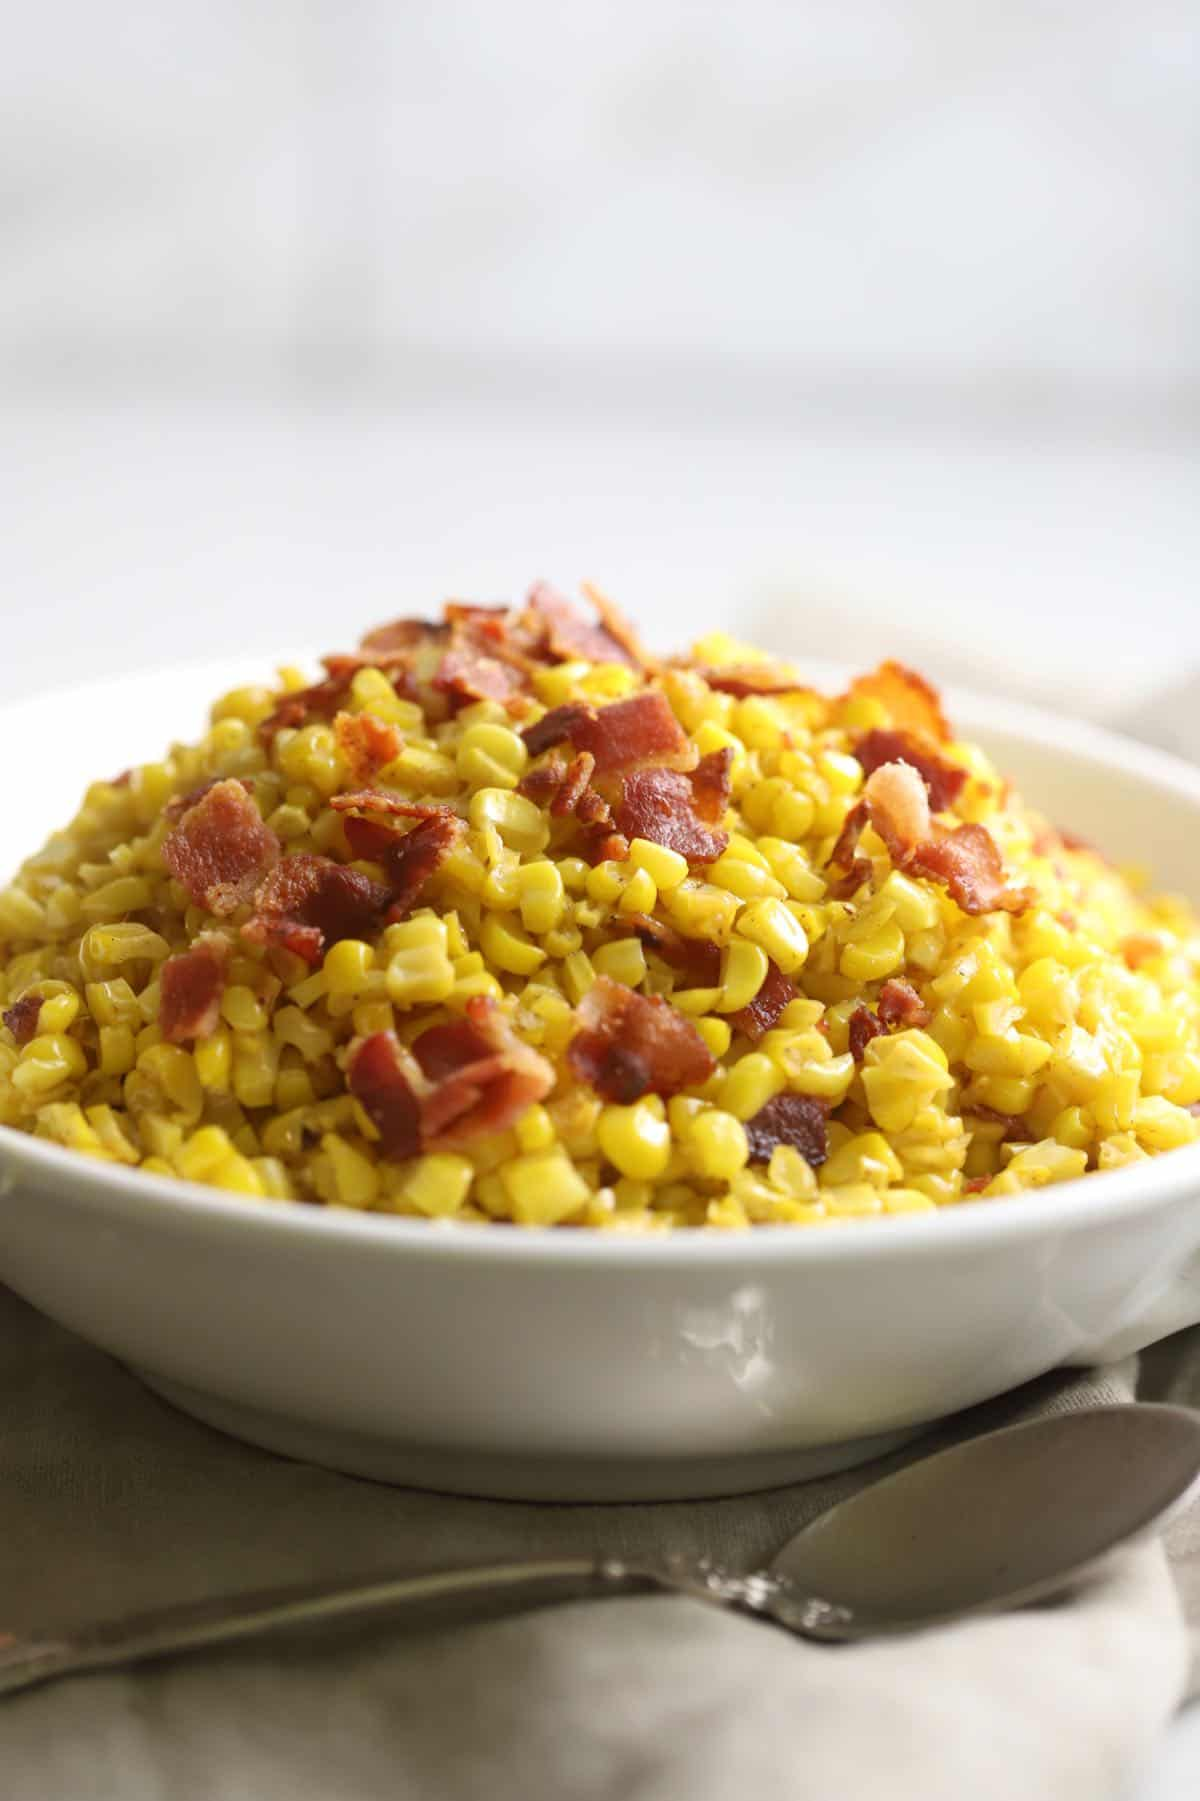 A large serving dish full of fried corn topped with bacon.